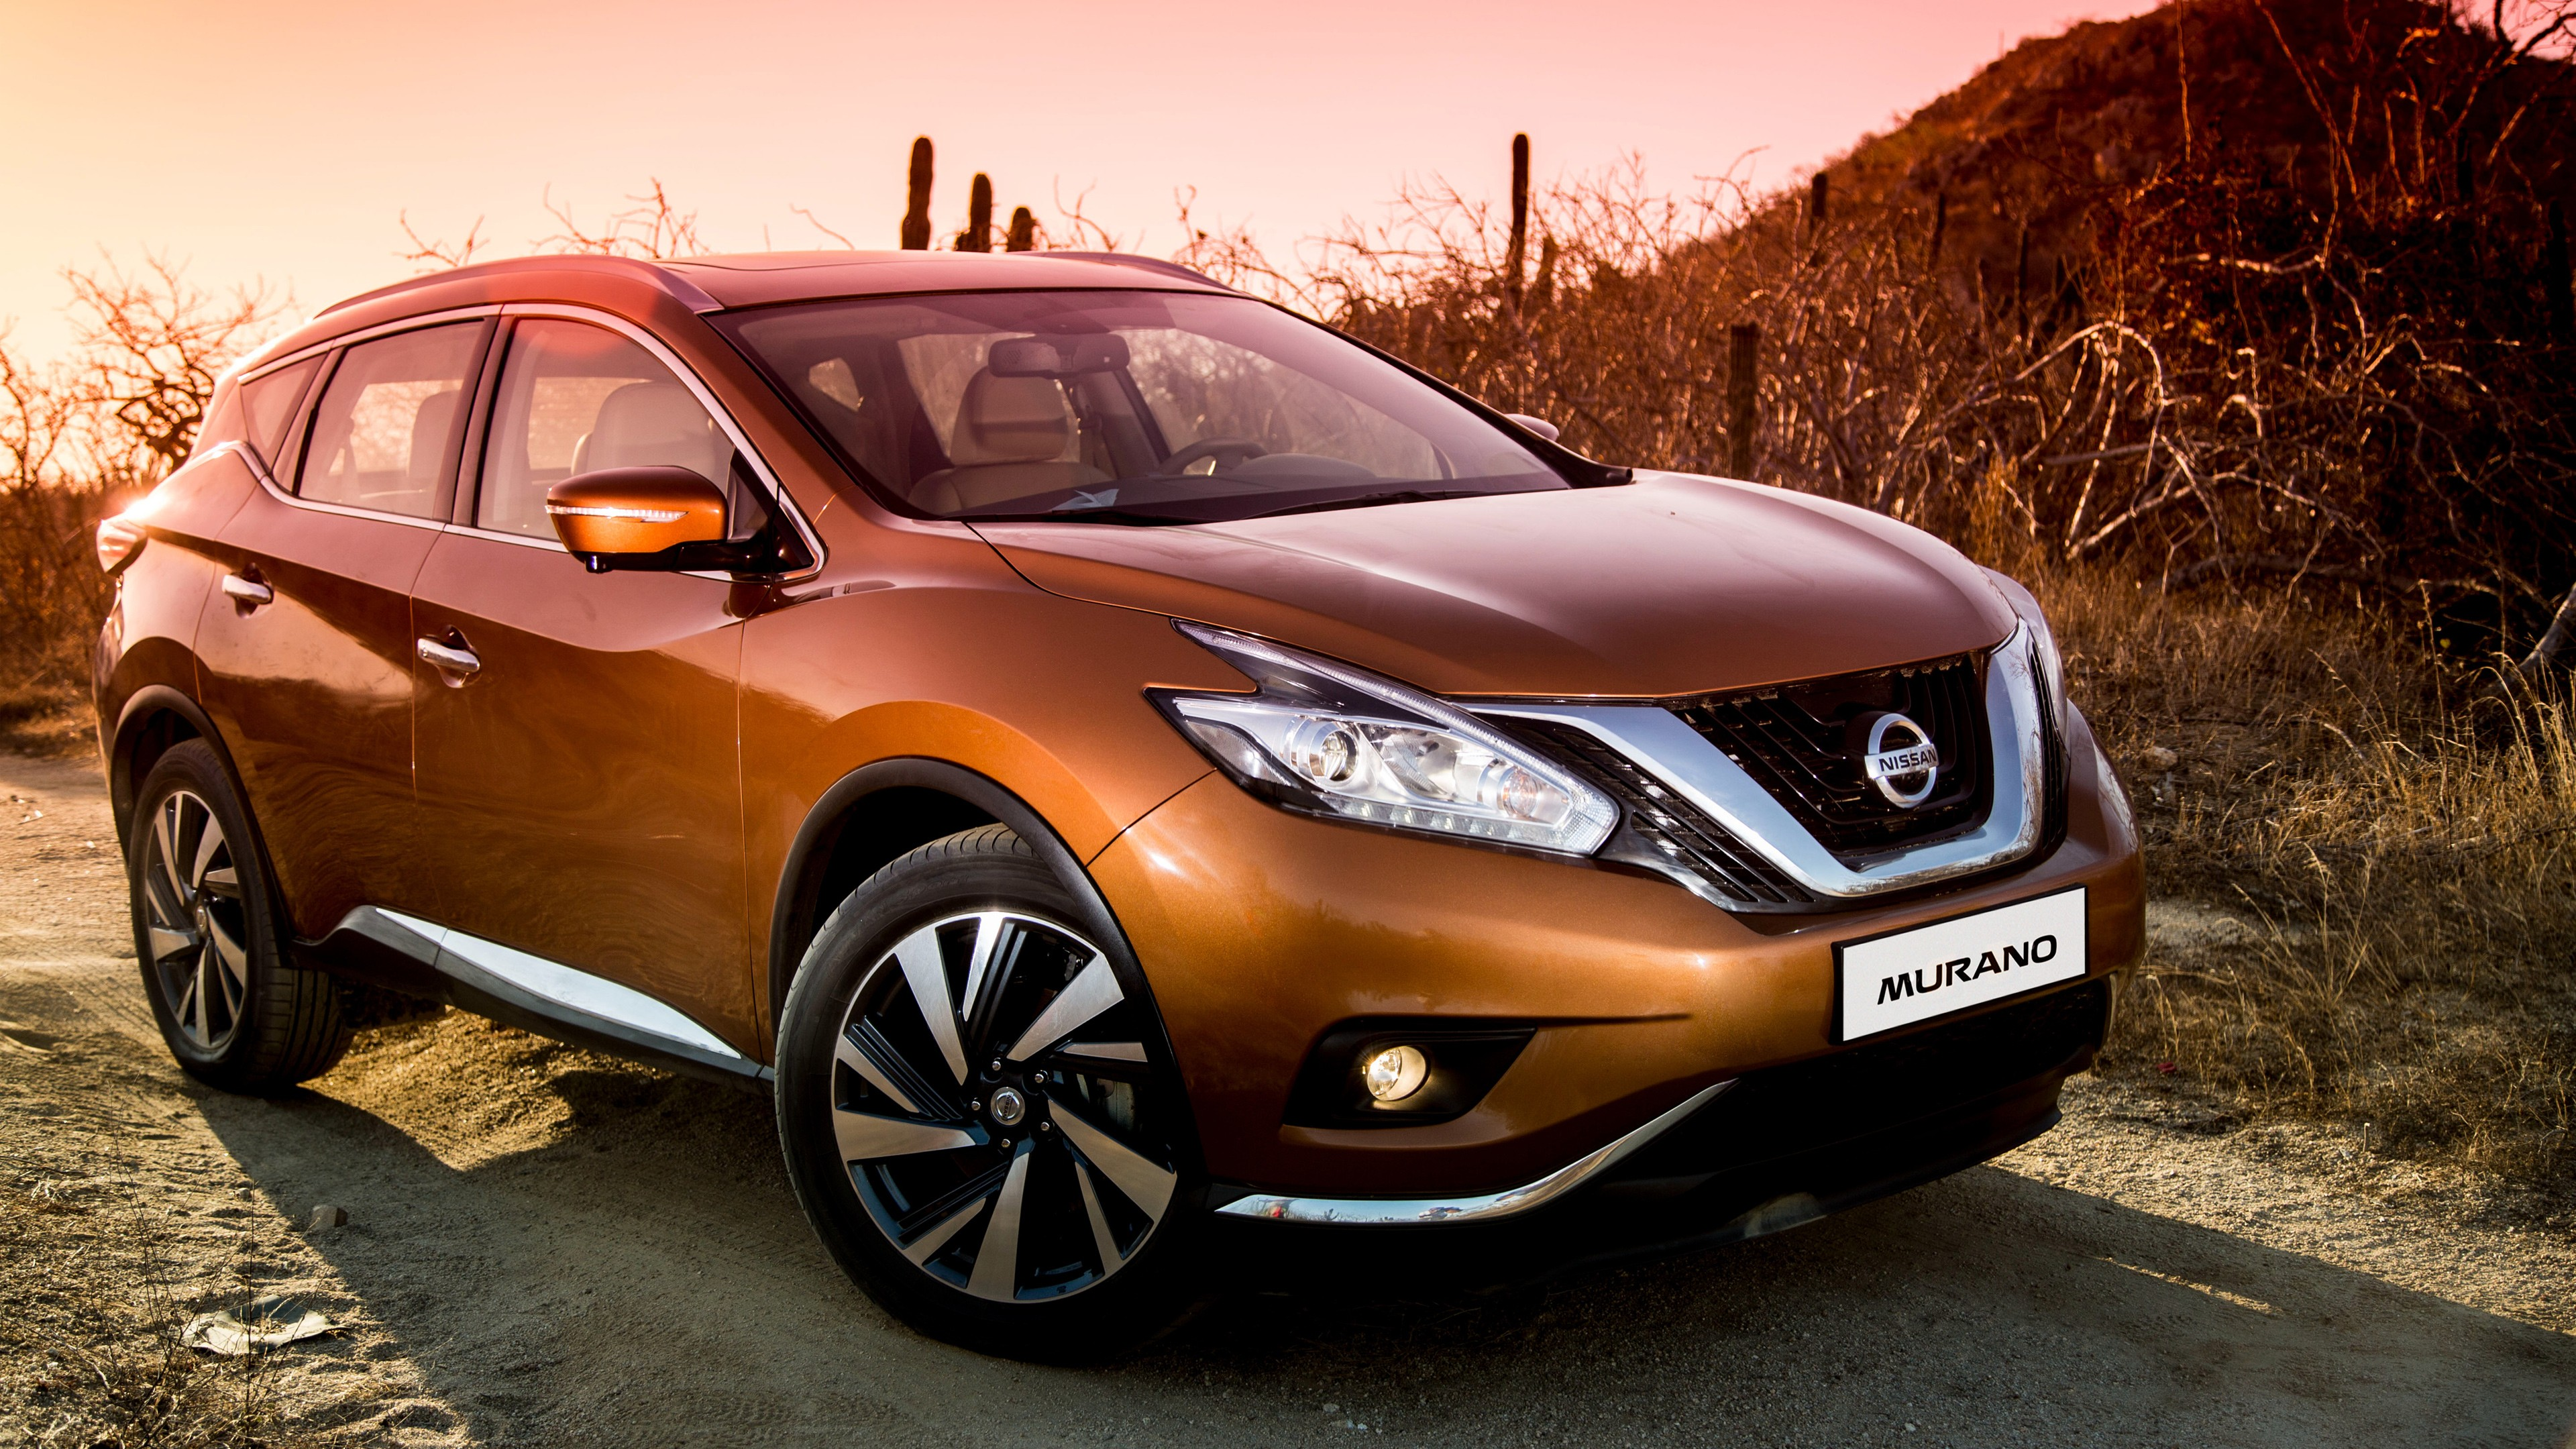 2016 Nissan Murano Wallpaper HD Car Wallpapers ID 6765